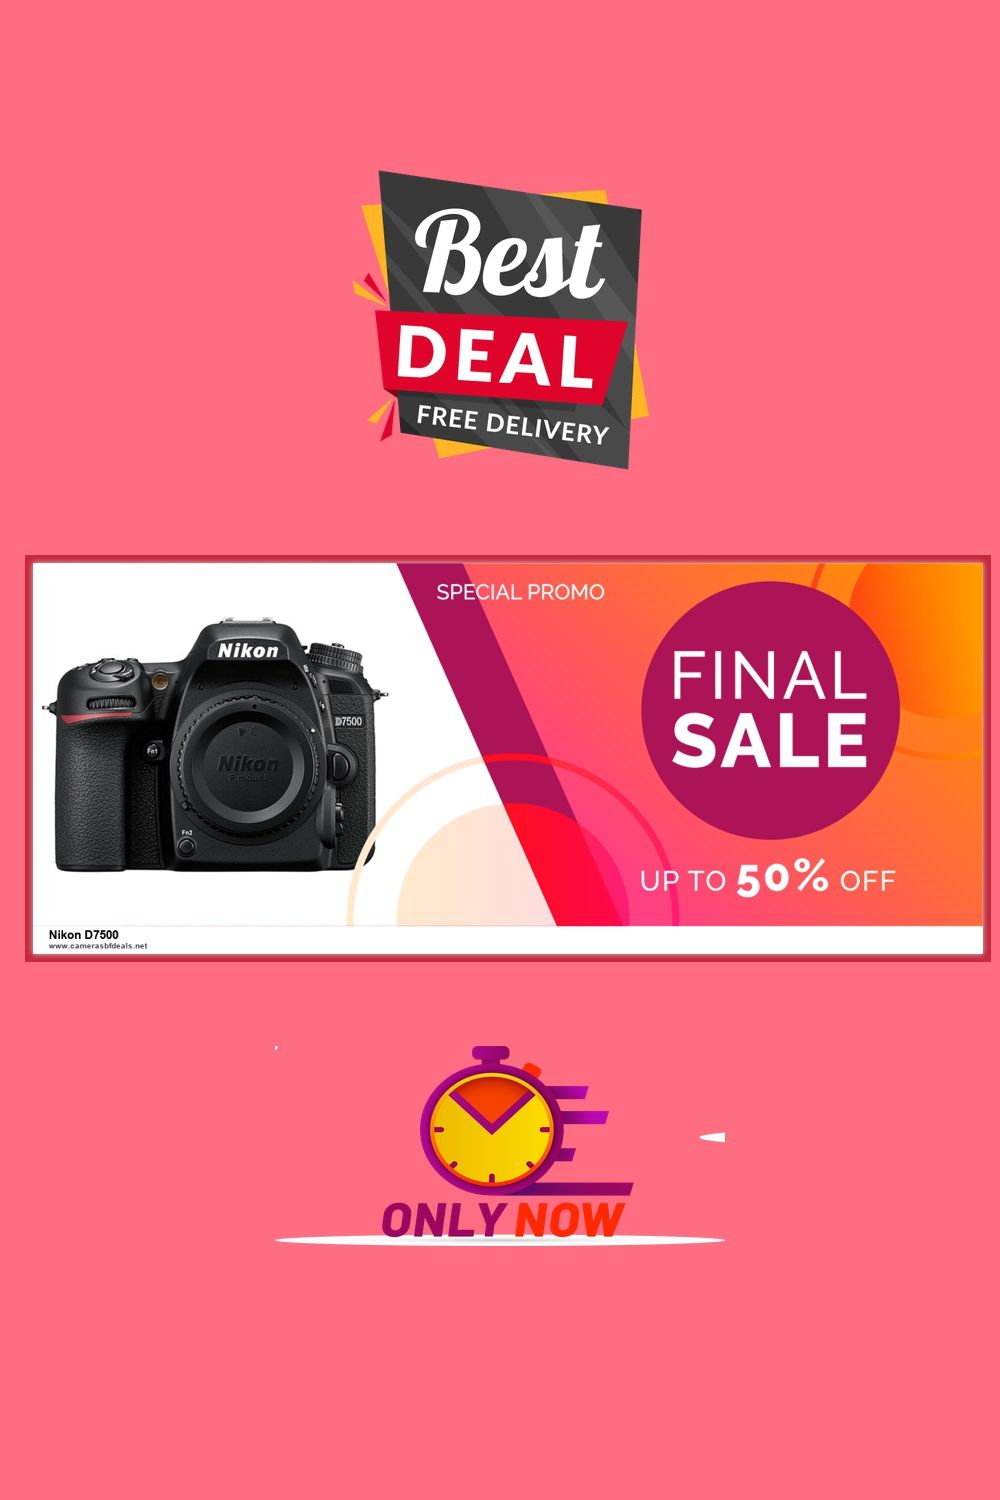 13 Best Nikon D7500 Black Friday Deals Up To 40 Off 2020 In 2020 Black Friday Cyber Monday Deals Black Friday Deals